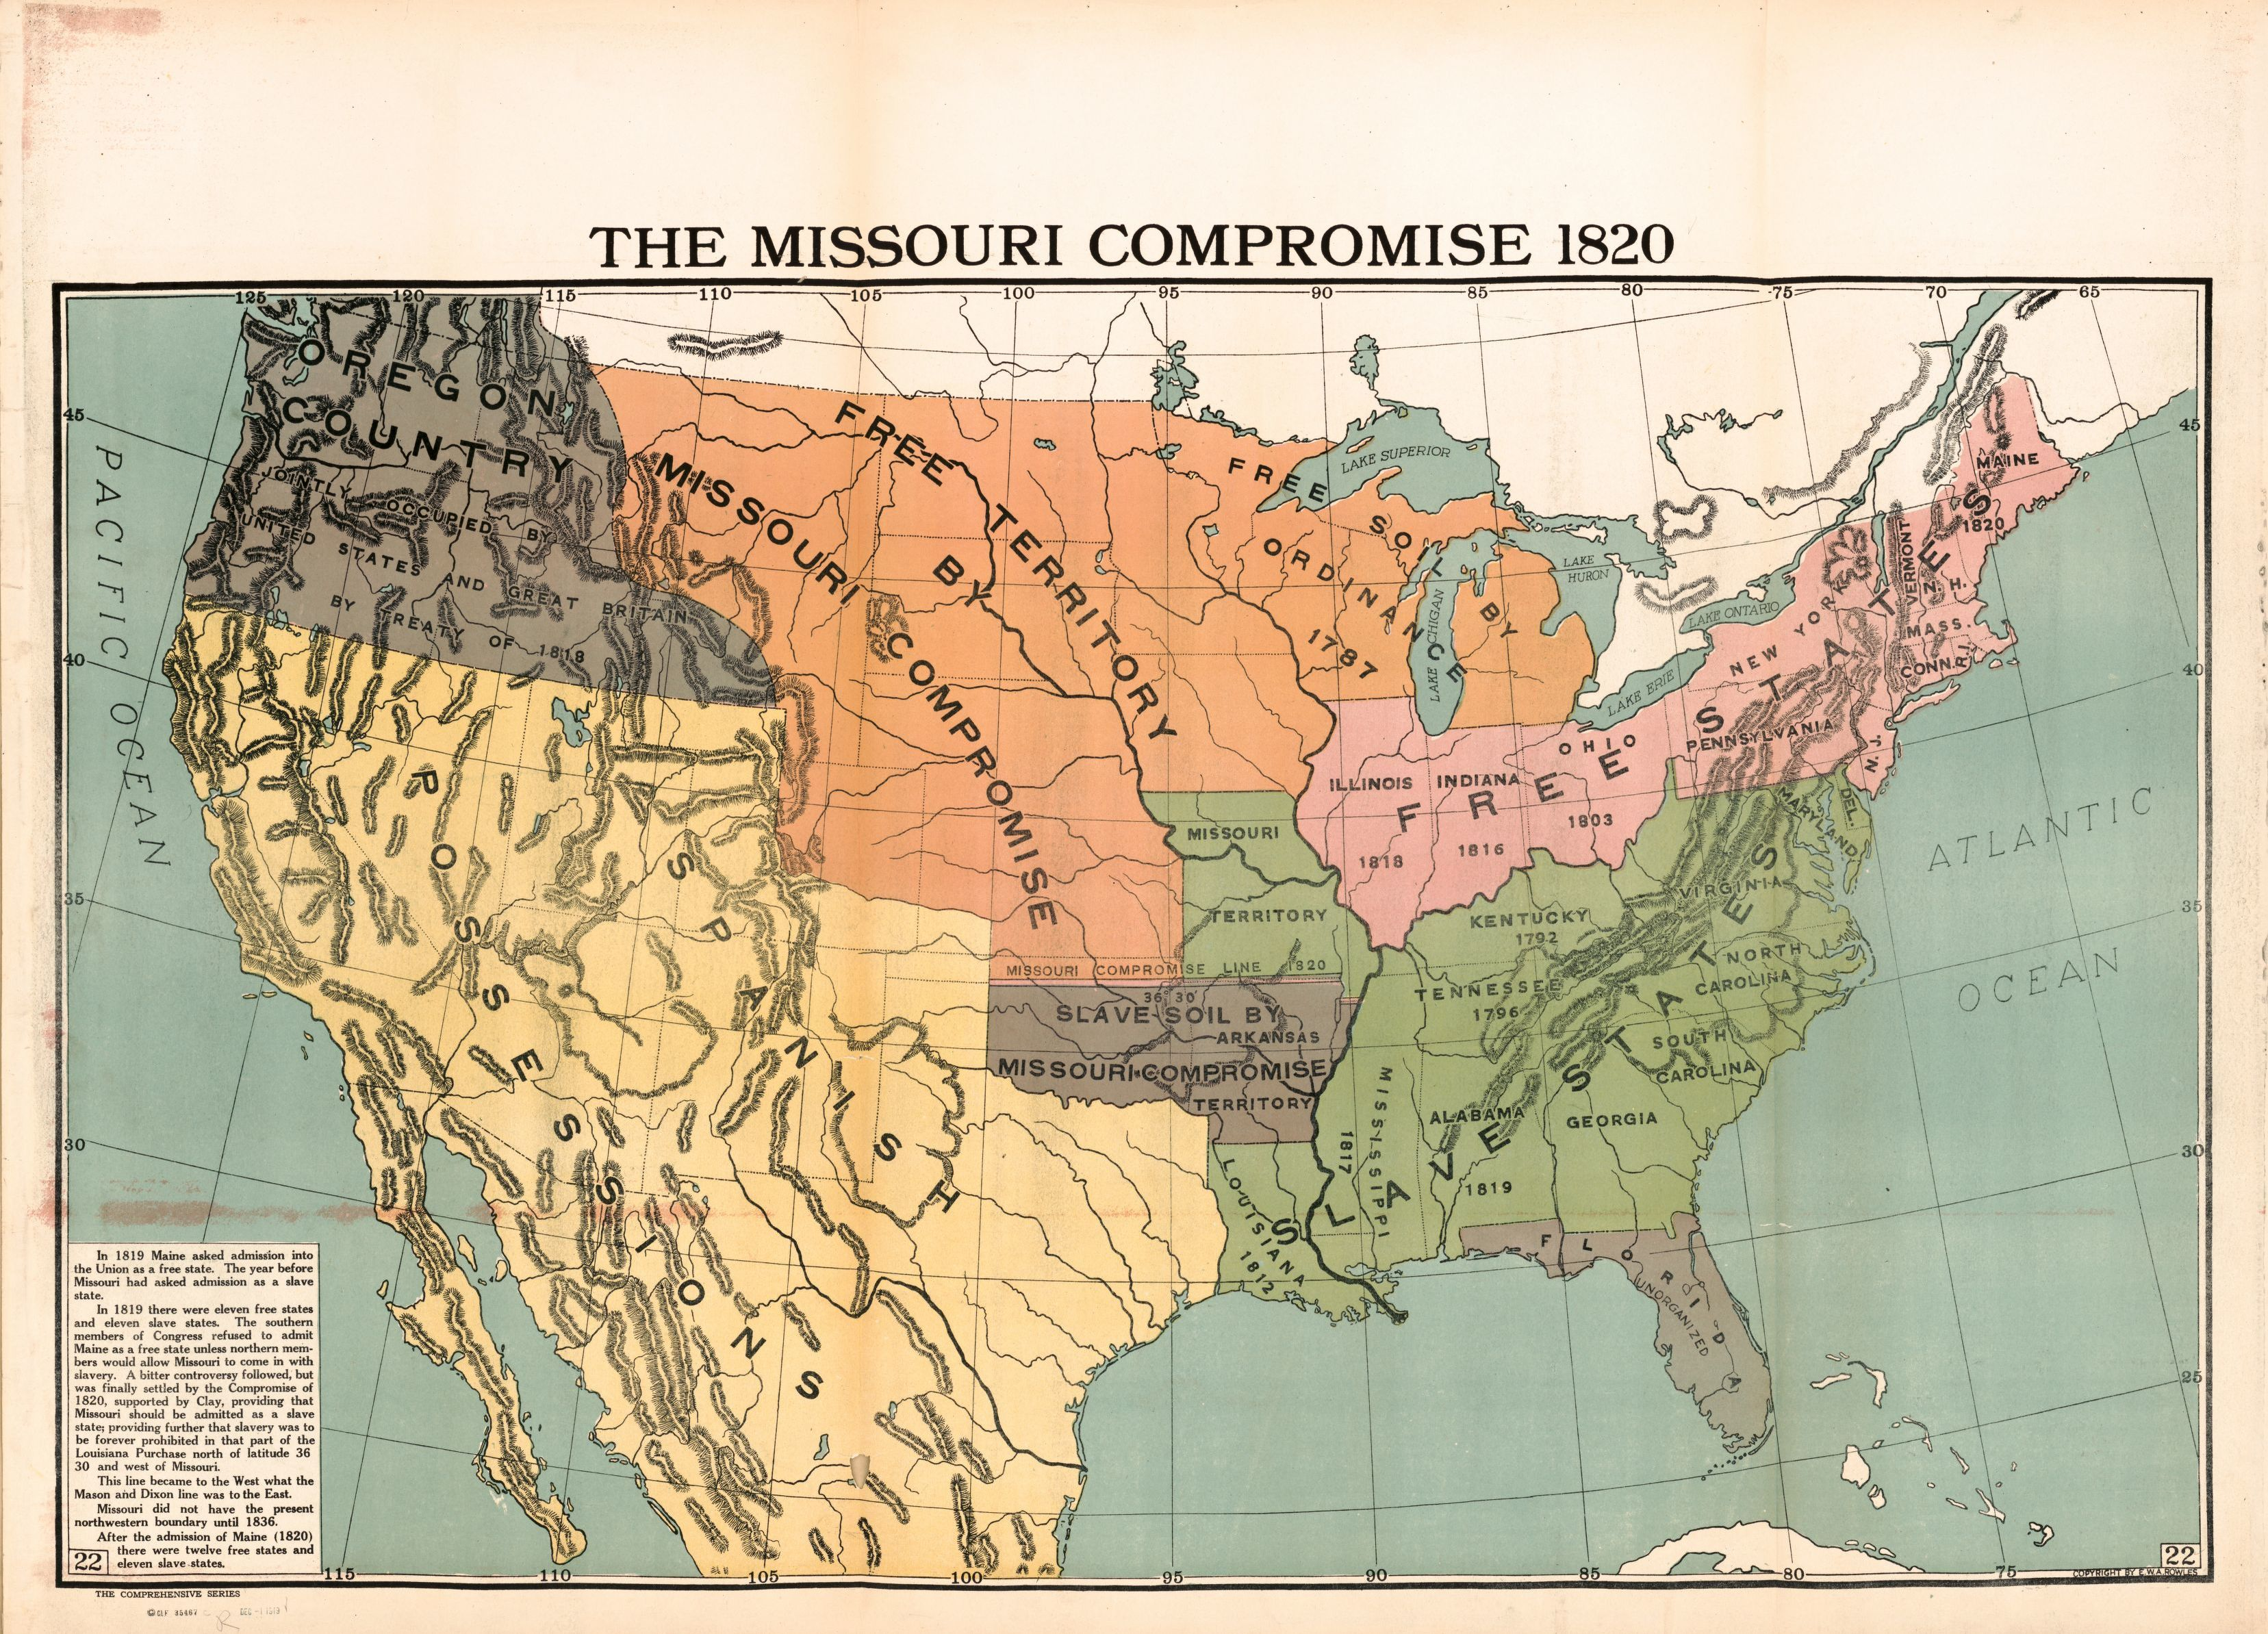 map of disputed territory resolved in the Missouri Compromise